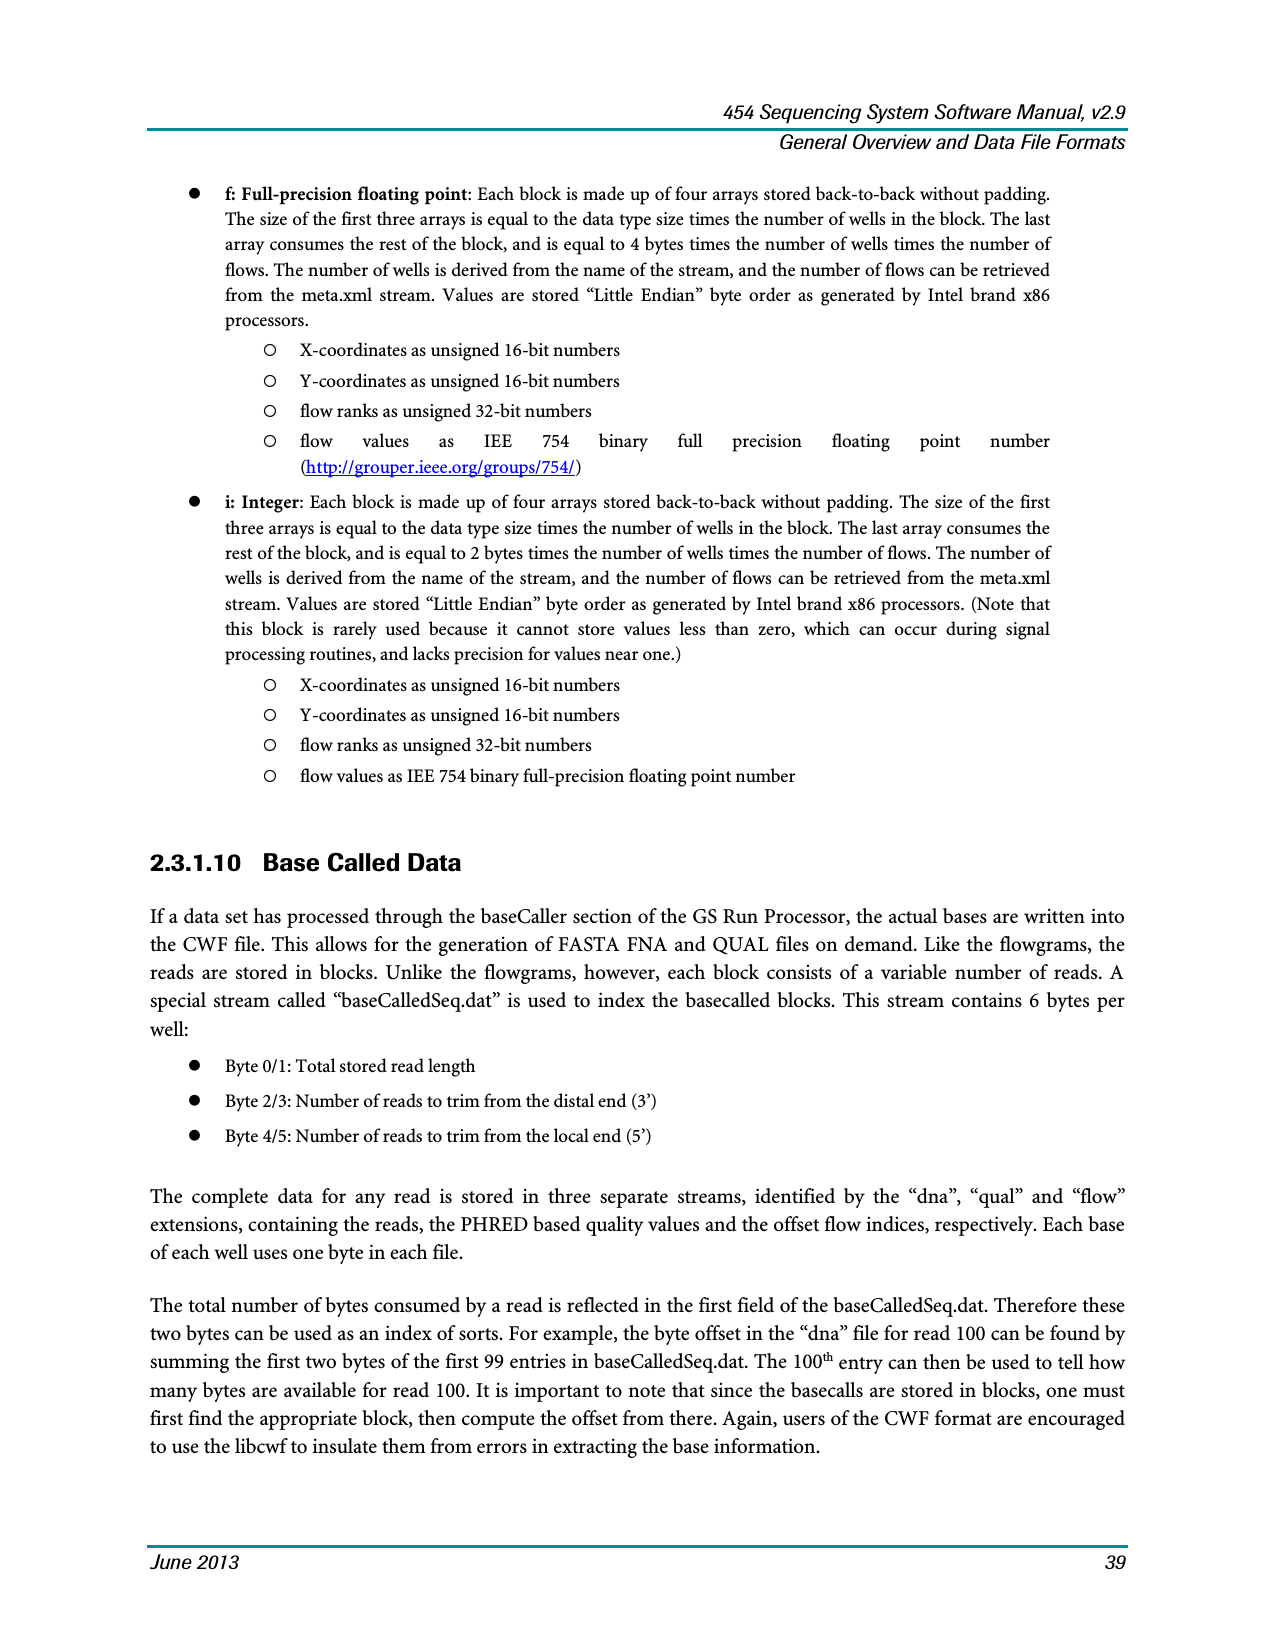 USM-00058.09_454SeqSys_SWManual-v2.9_Overview-39.png